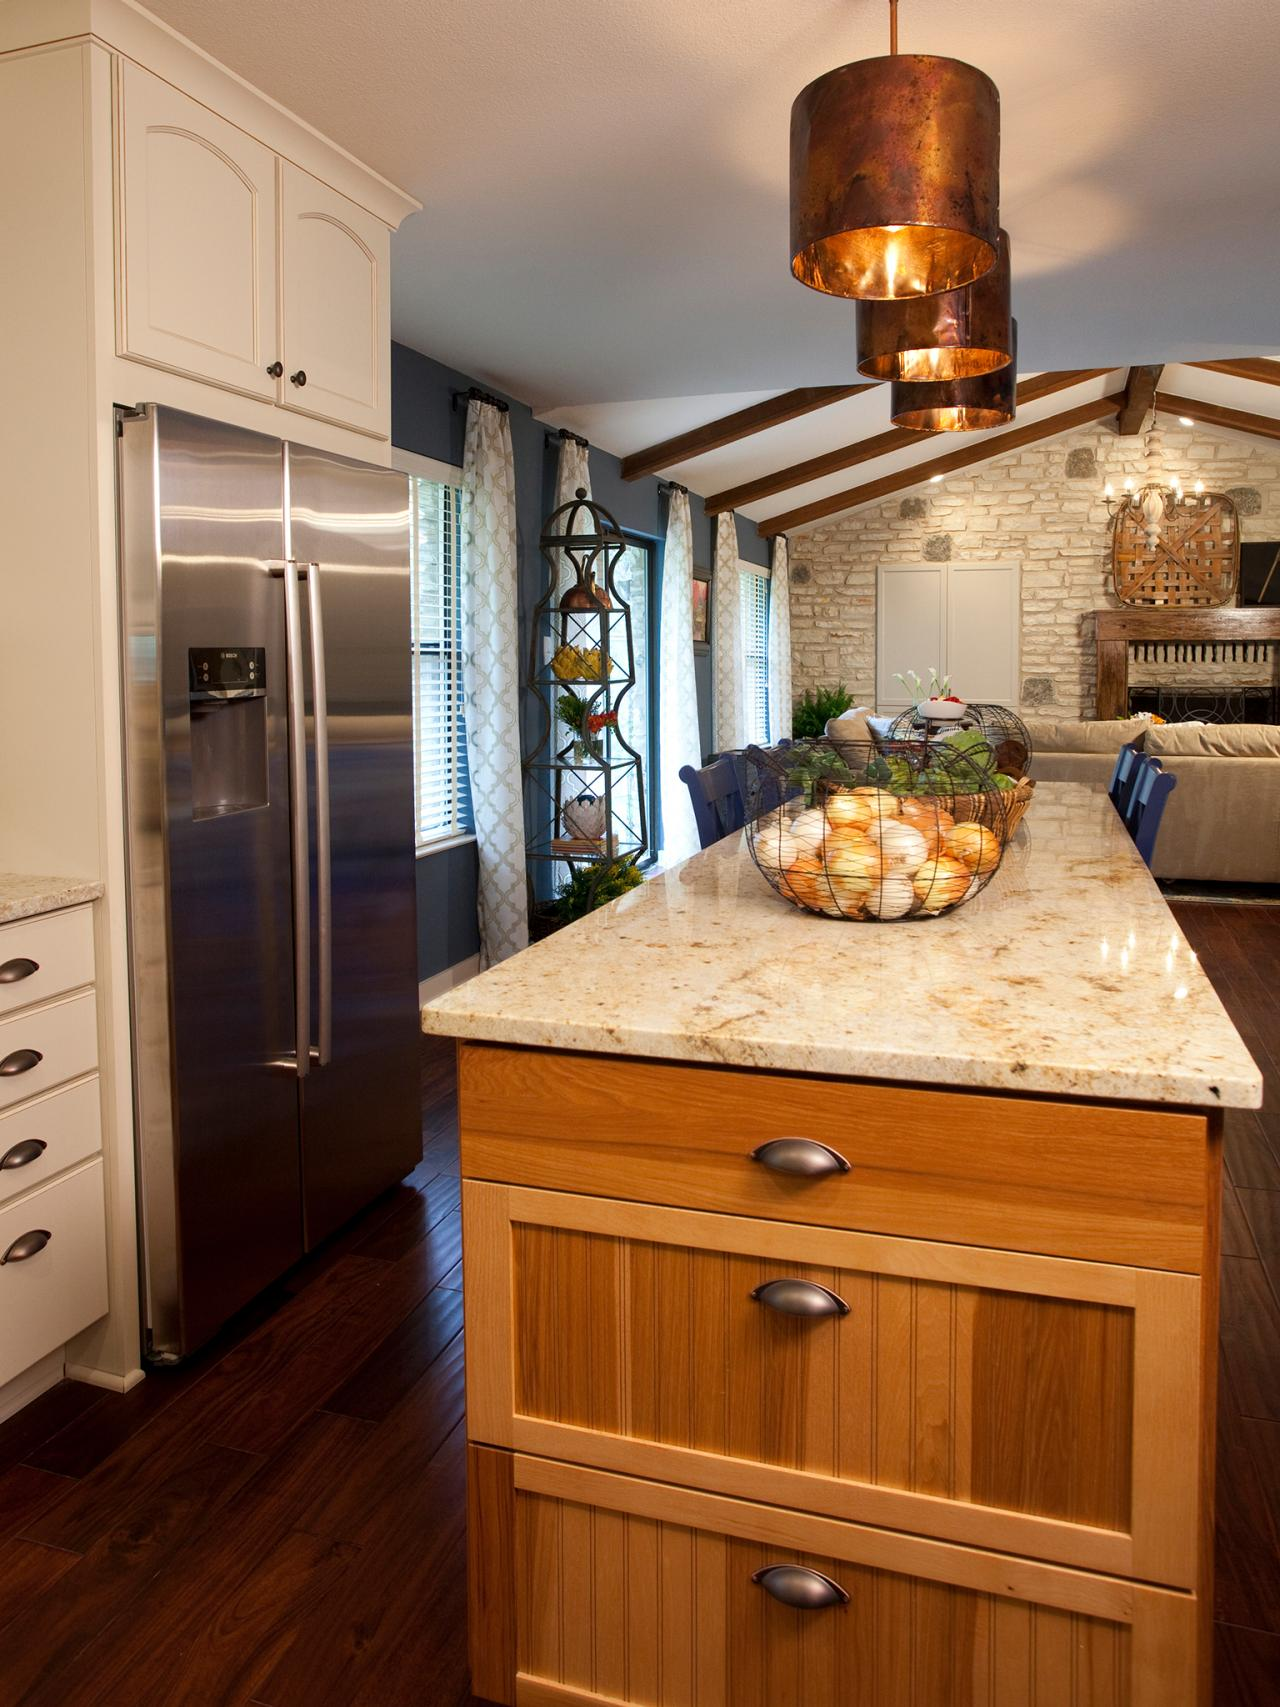 Open Kitchen Designs With Island kitchen island design ideas: pictures & tips from hgtv | hgtv